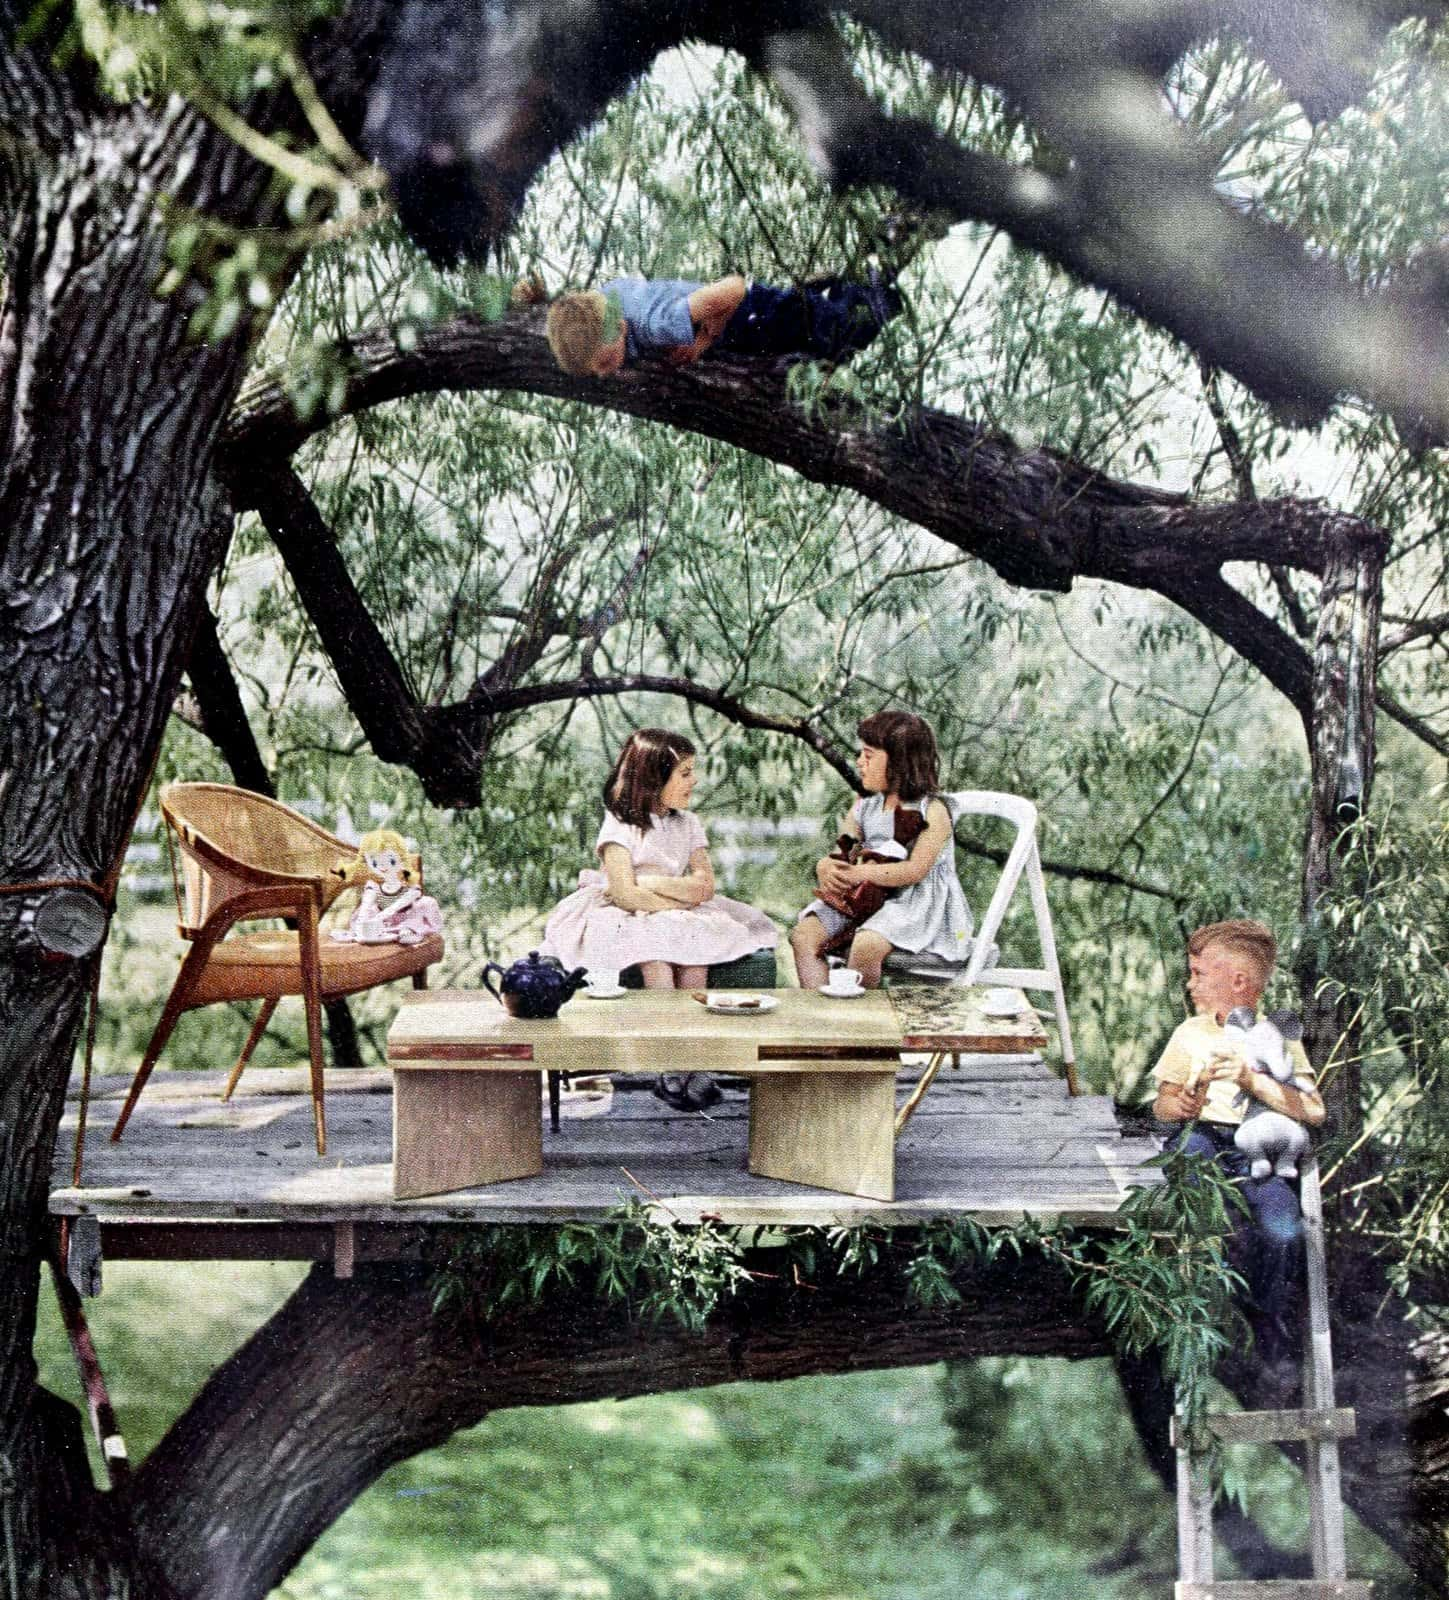 Furniture in a vintage 1950s tree house